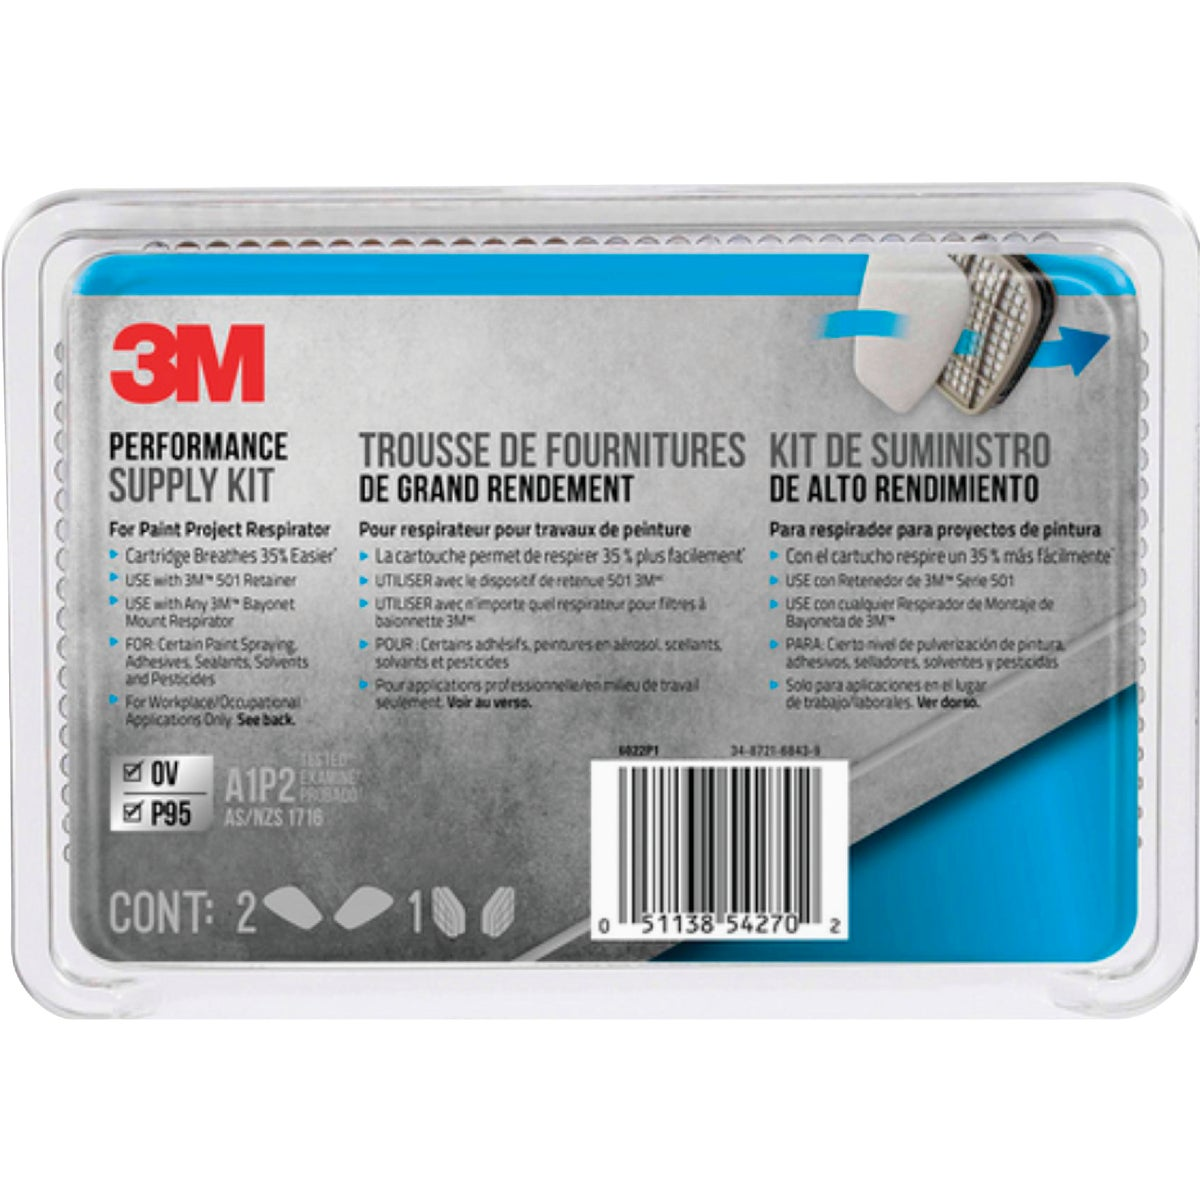 FILTER CARTRIDGE - 6022PA1-A by 3m Co